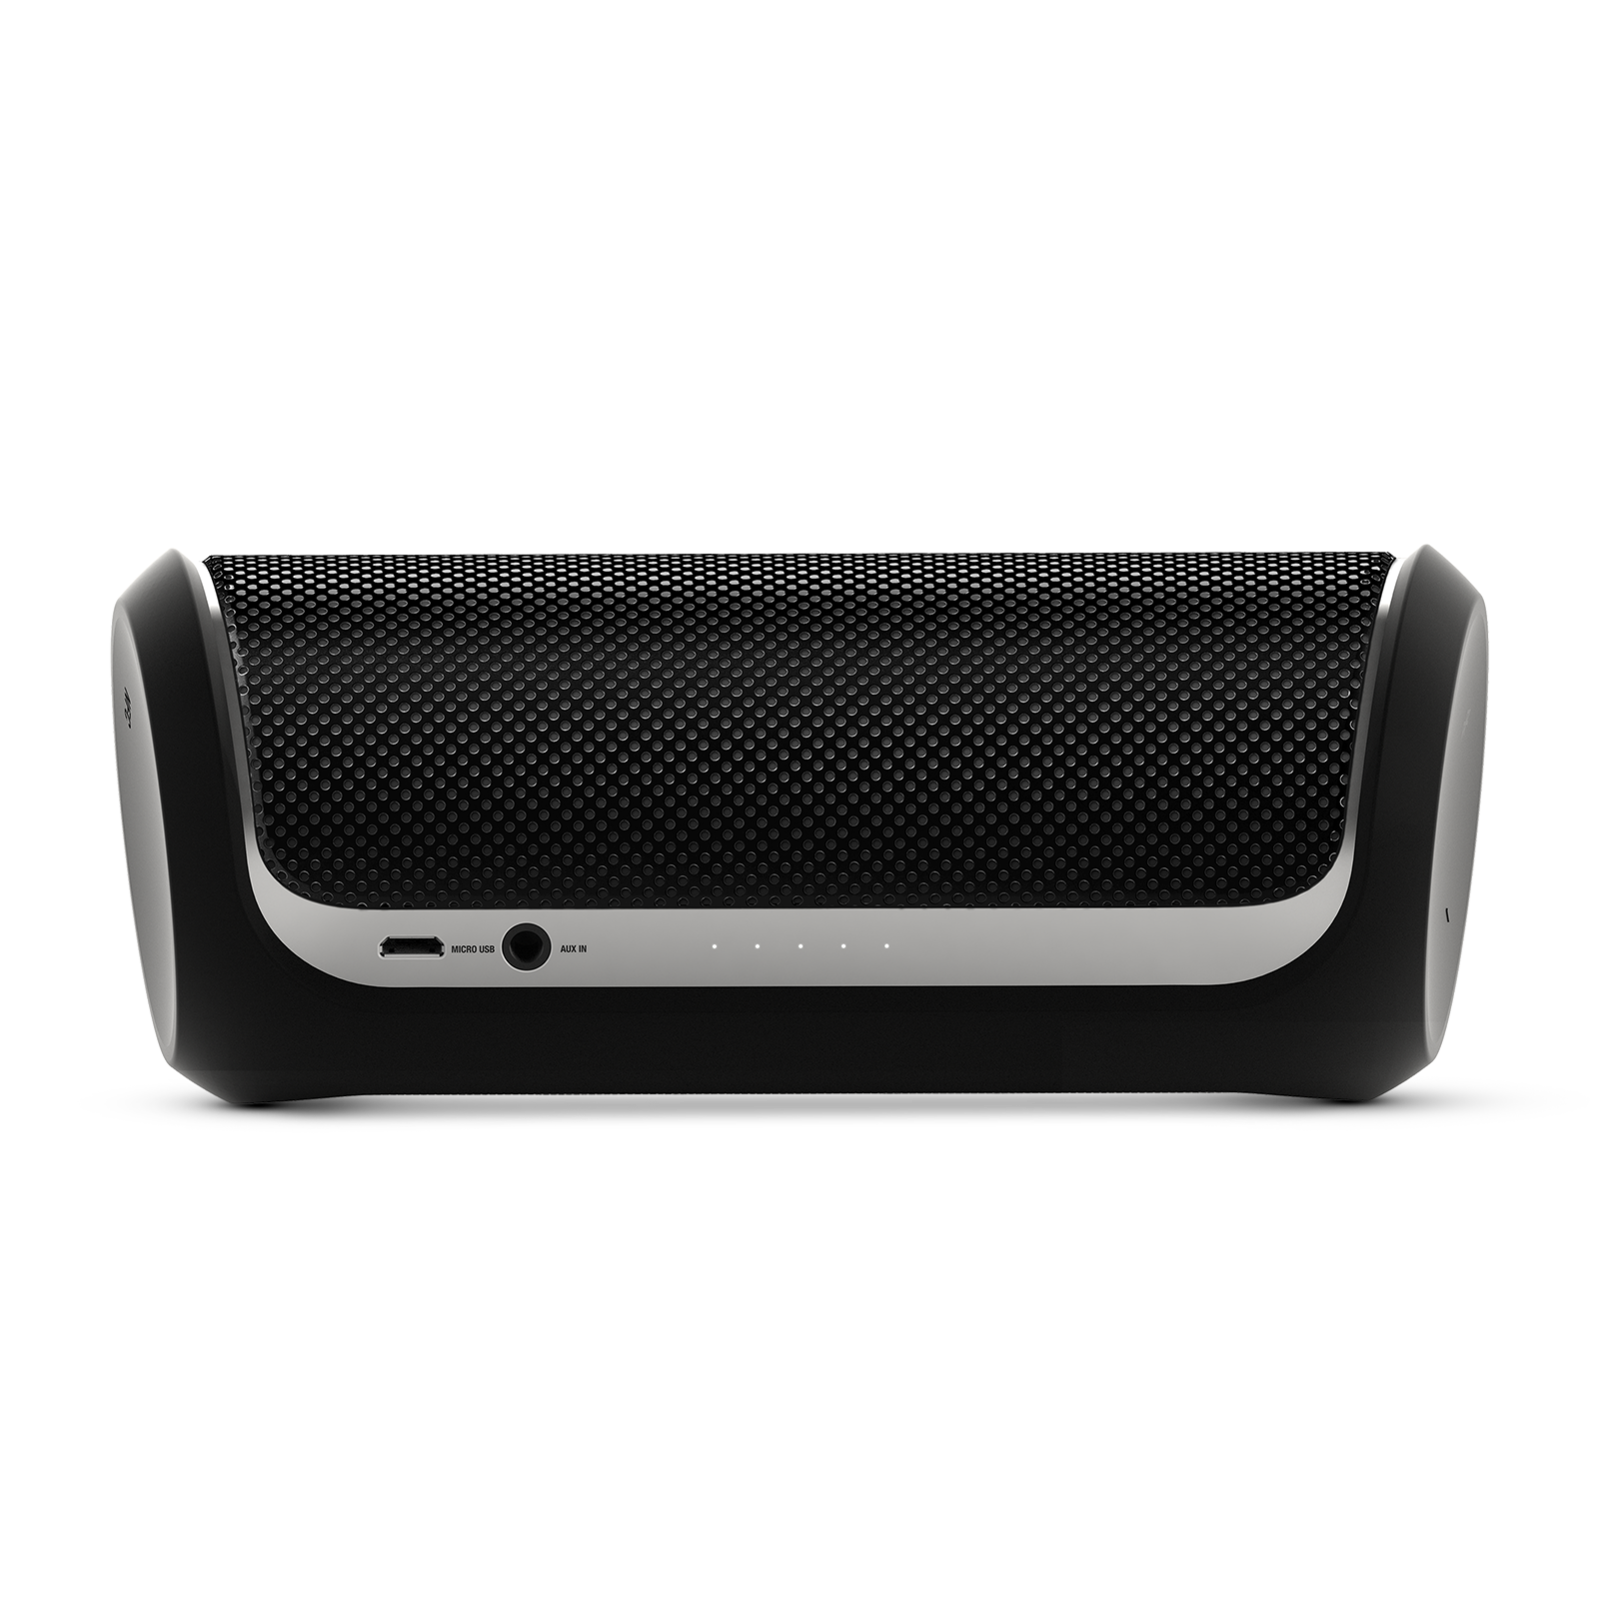 Jbl Flip 2 Portable Bluetooth Speaker With Microphone Usb Charging Jeep Sound Bar Wiring Diagram Colors